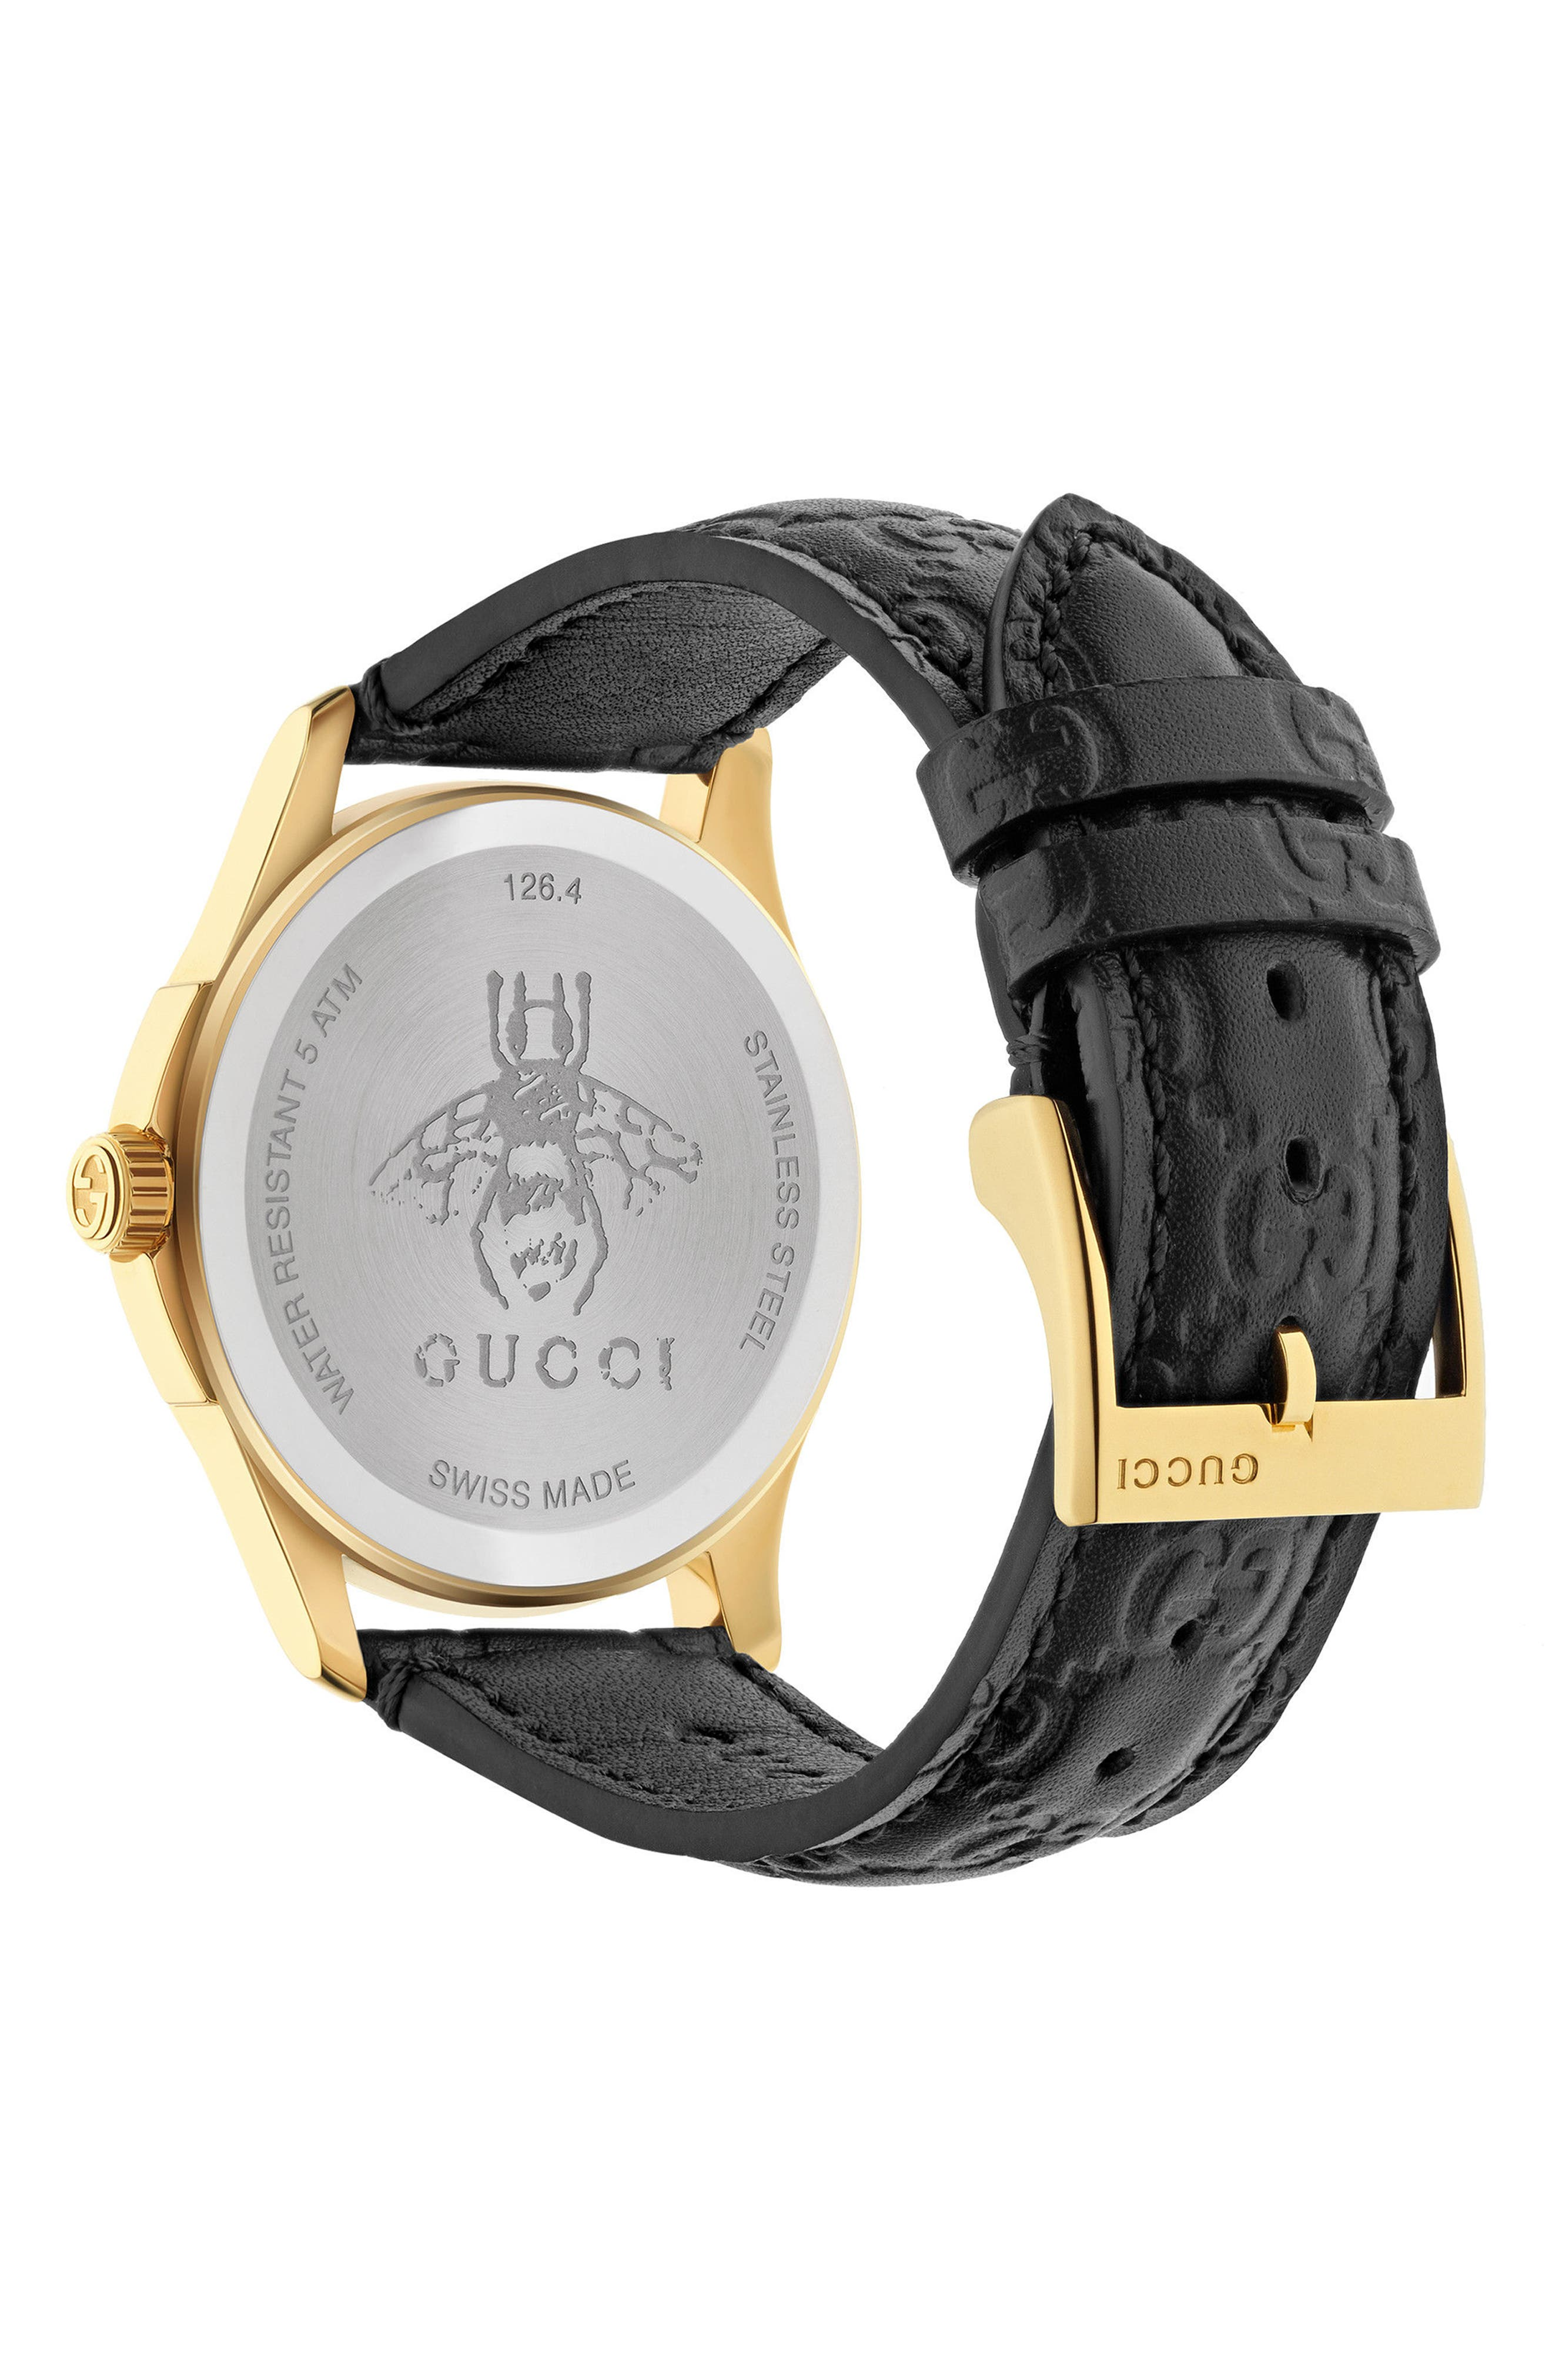 GUCCI, G-Timeless Leather Strap Watch, 38mm, Alternate thumbnail 2, color, BLACK/ GOLD